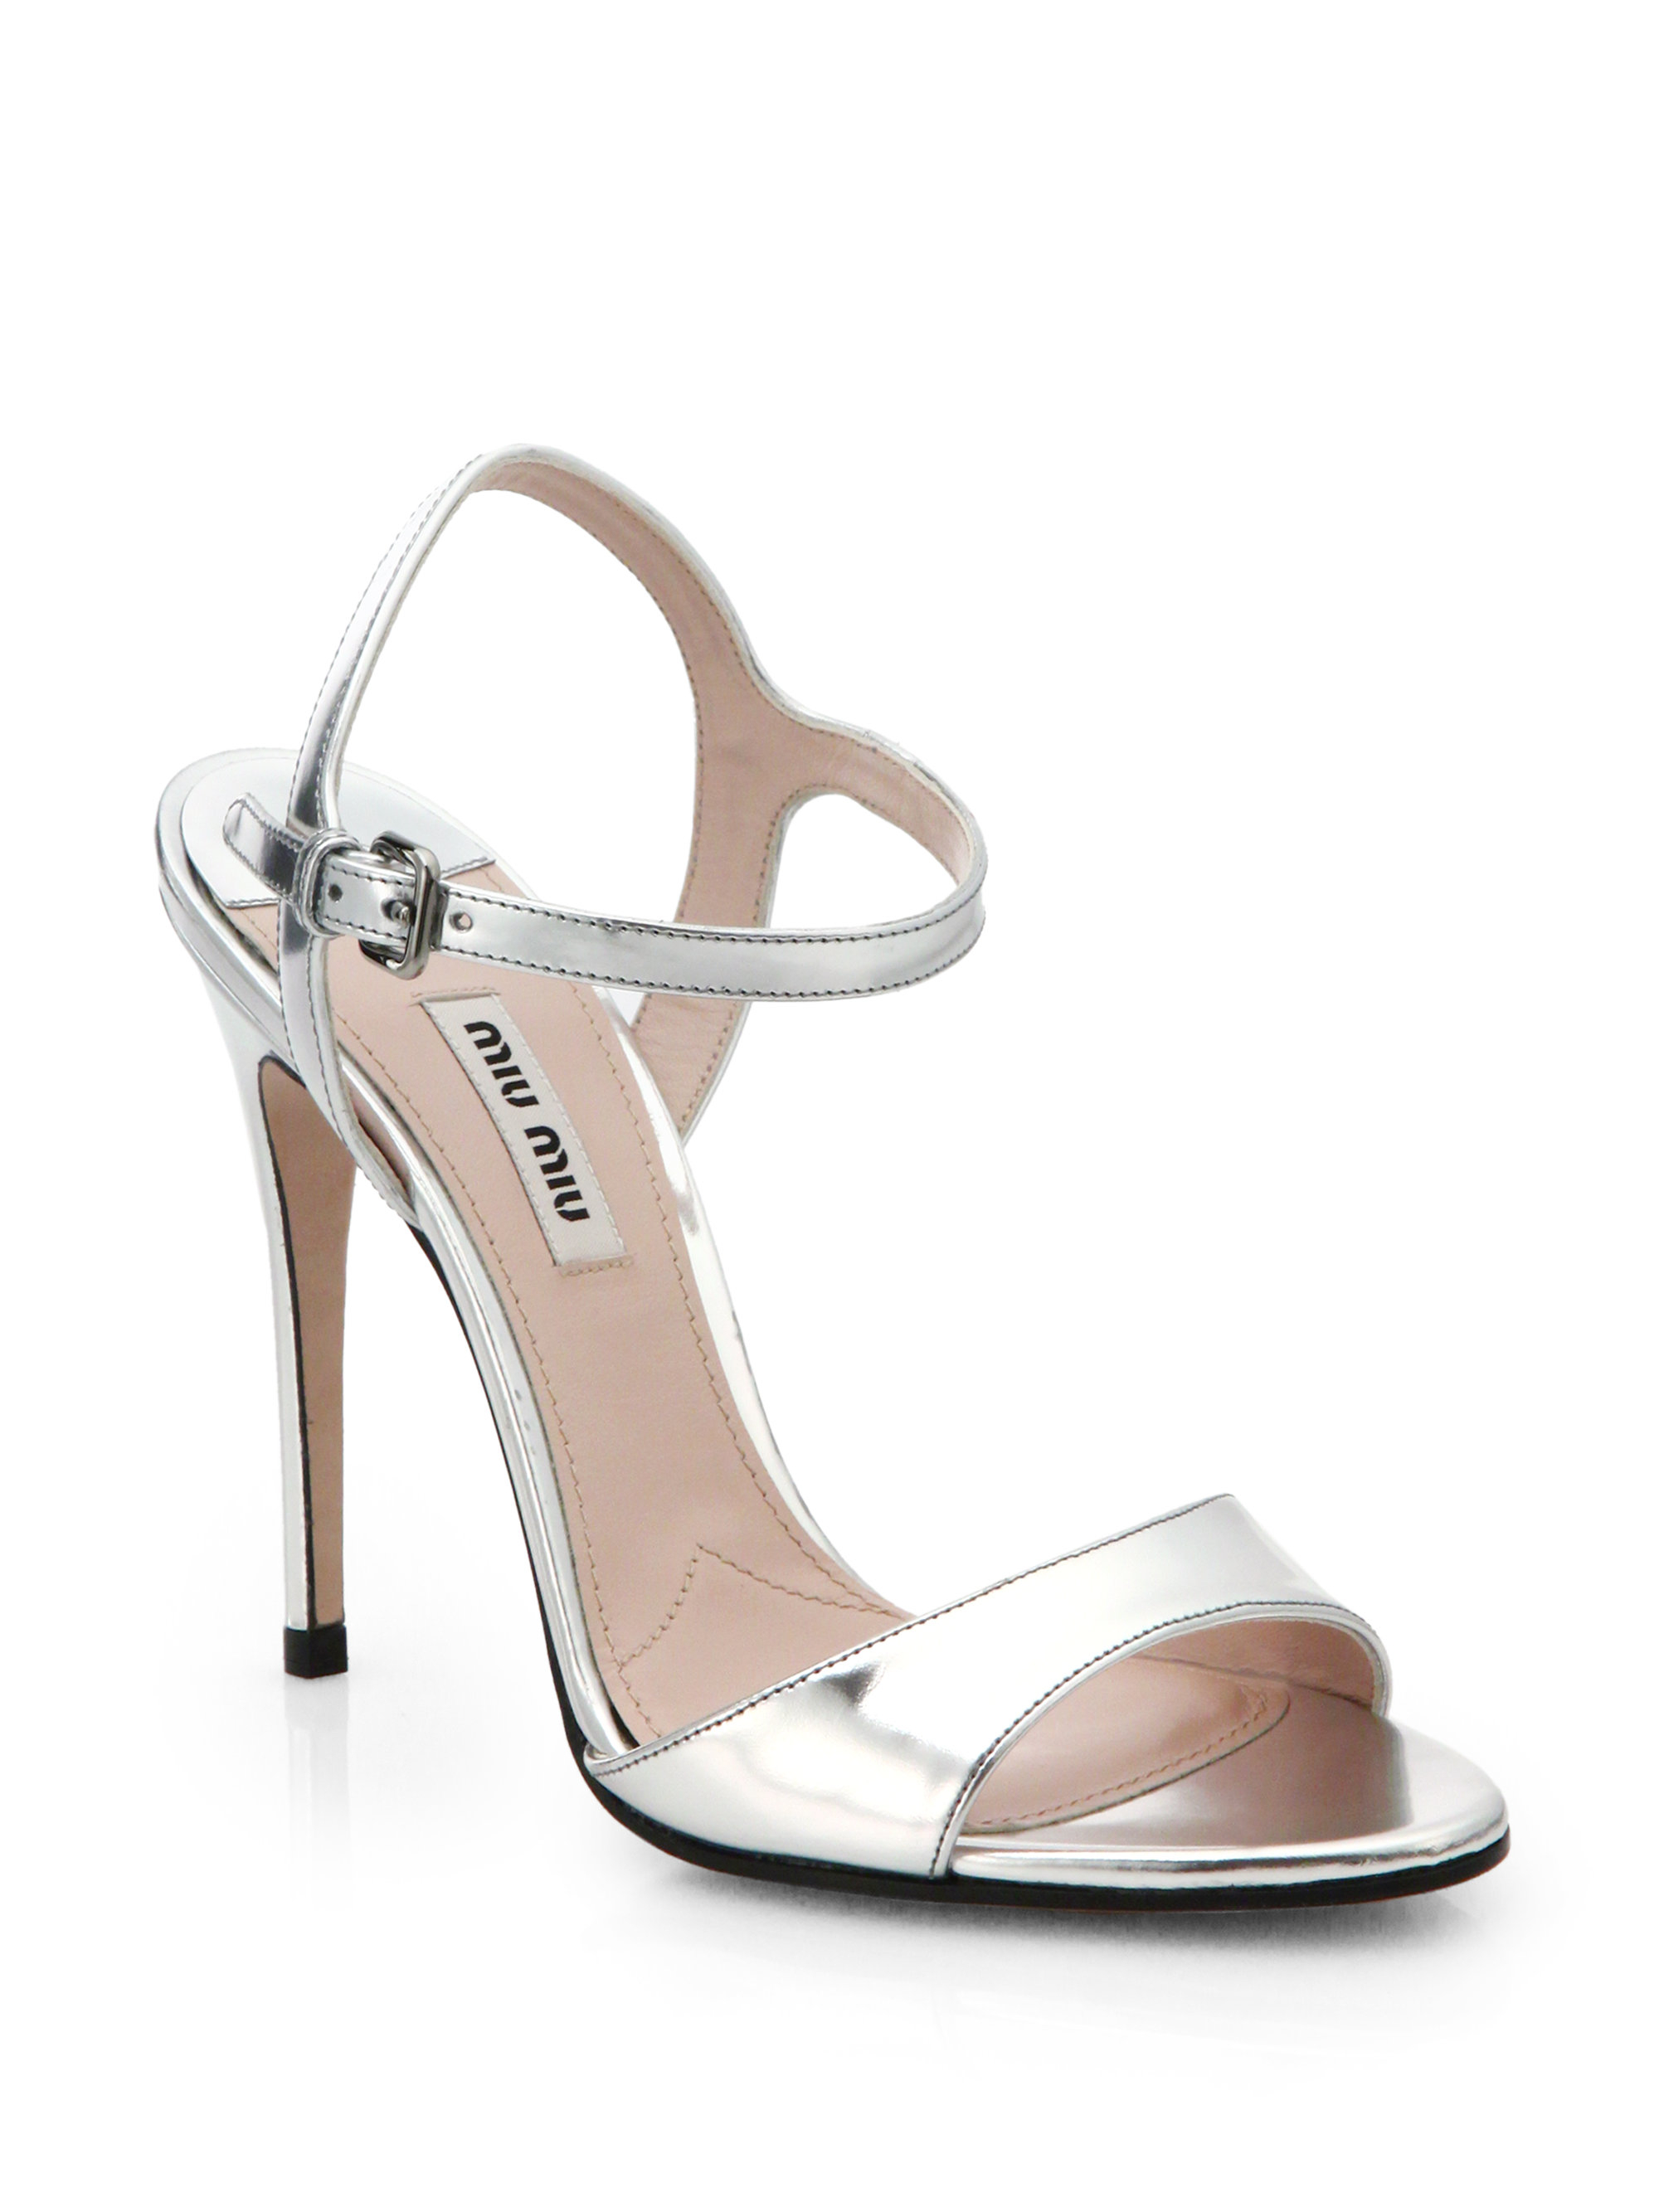 Lyst Miu Miu Metallic Leather Strappy Sandals In Metallic